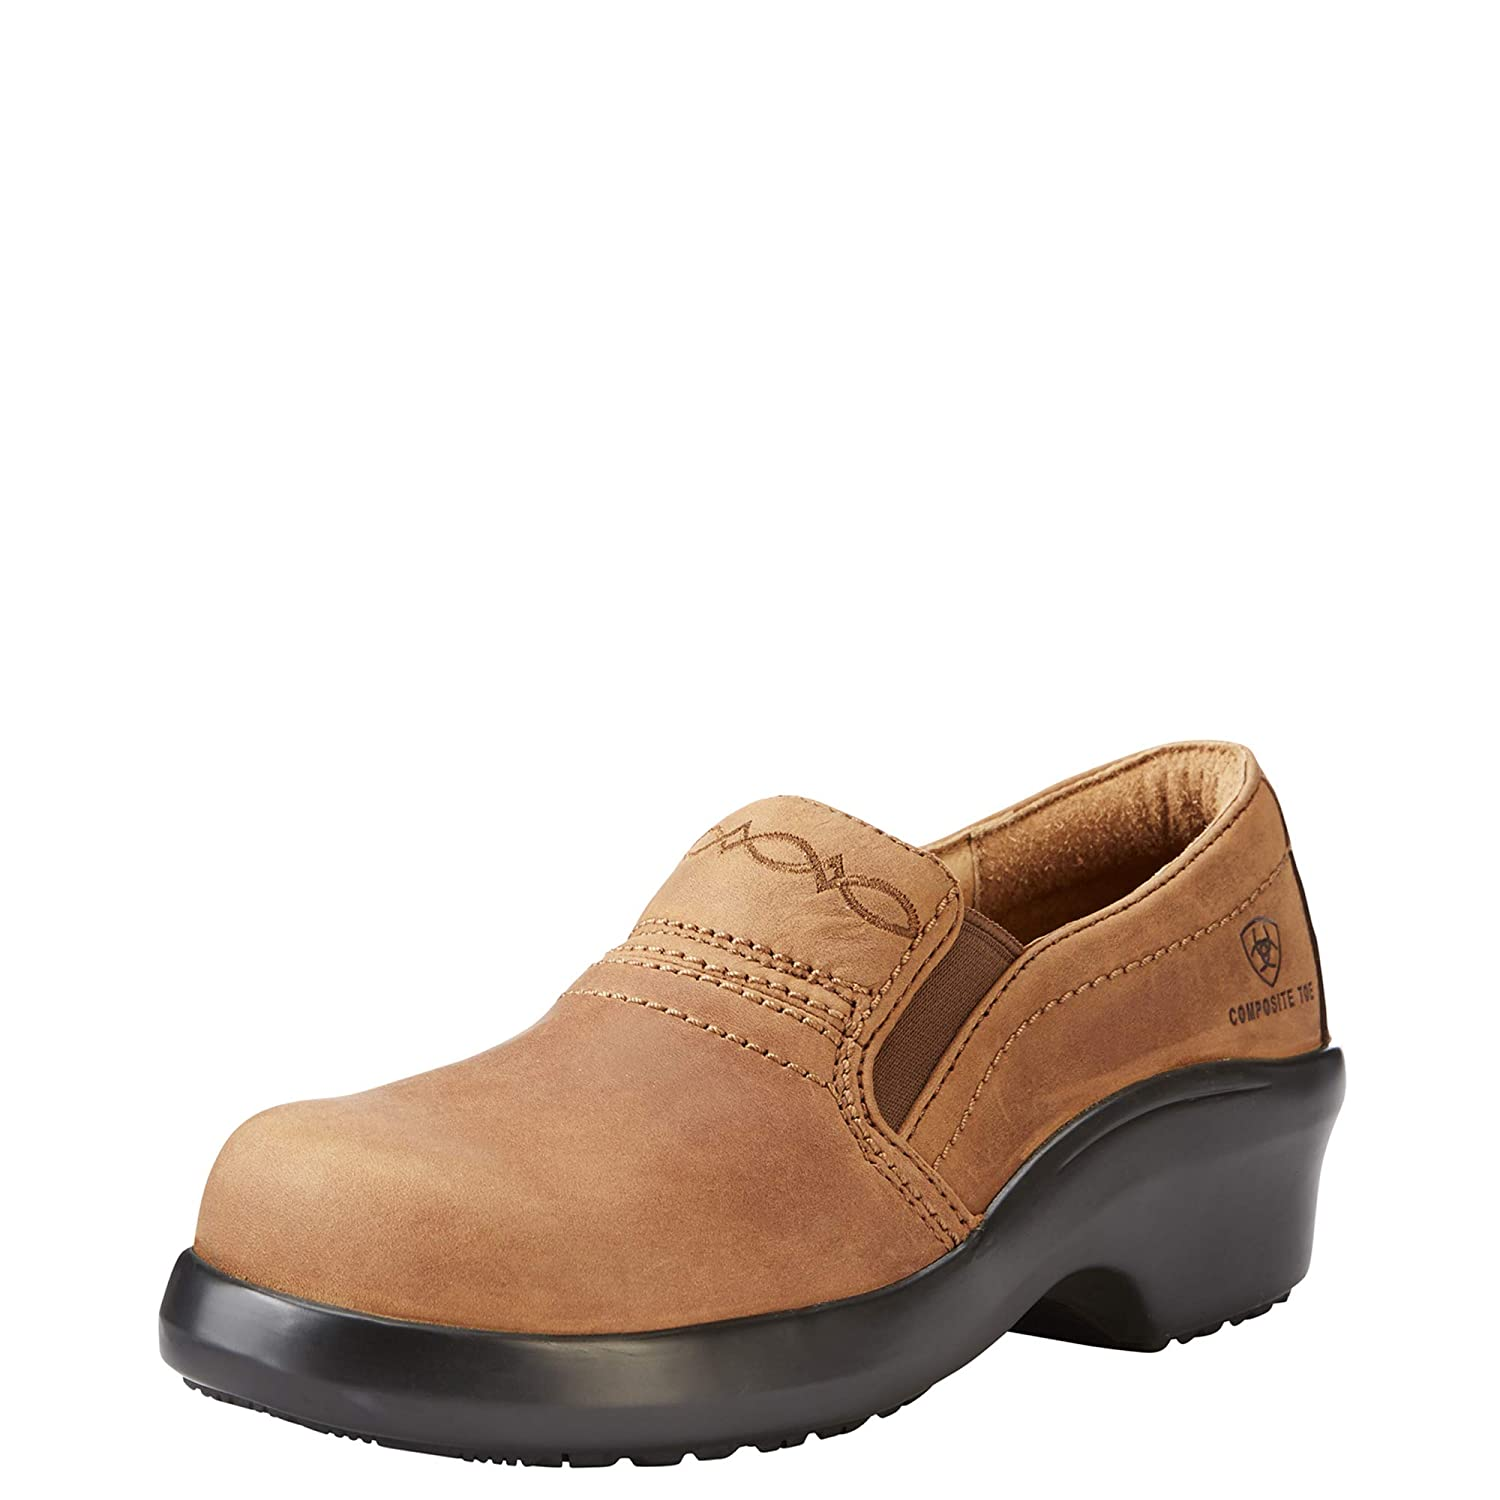 [Ariat] レディース Expert Safety Clog Static Dissipative Expert Safety Clog Composite Toe ブラウン 7.5 C US